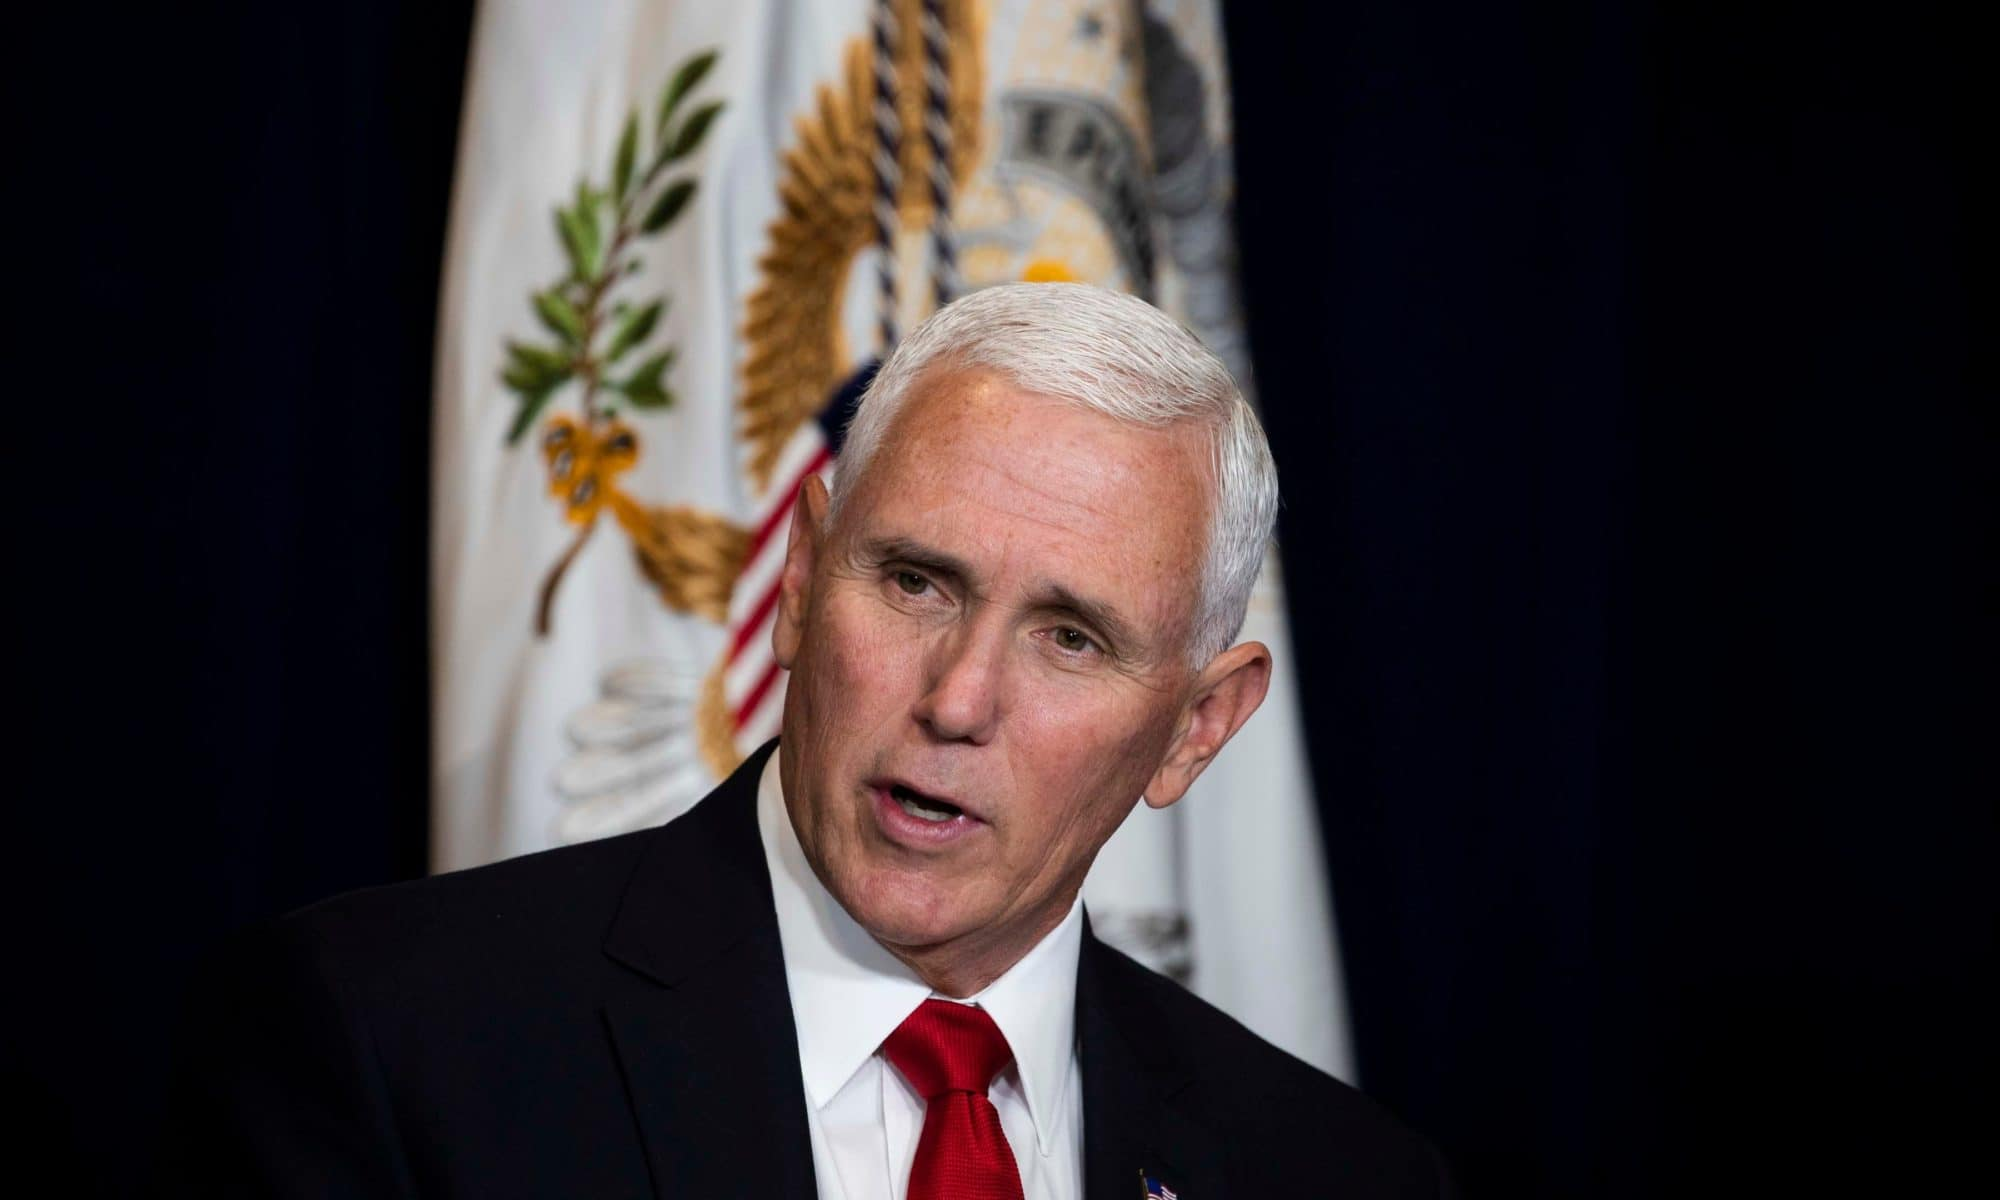 House impeachment requests Ukraine documents from Mike Pence